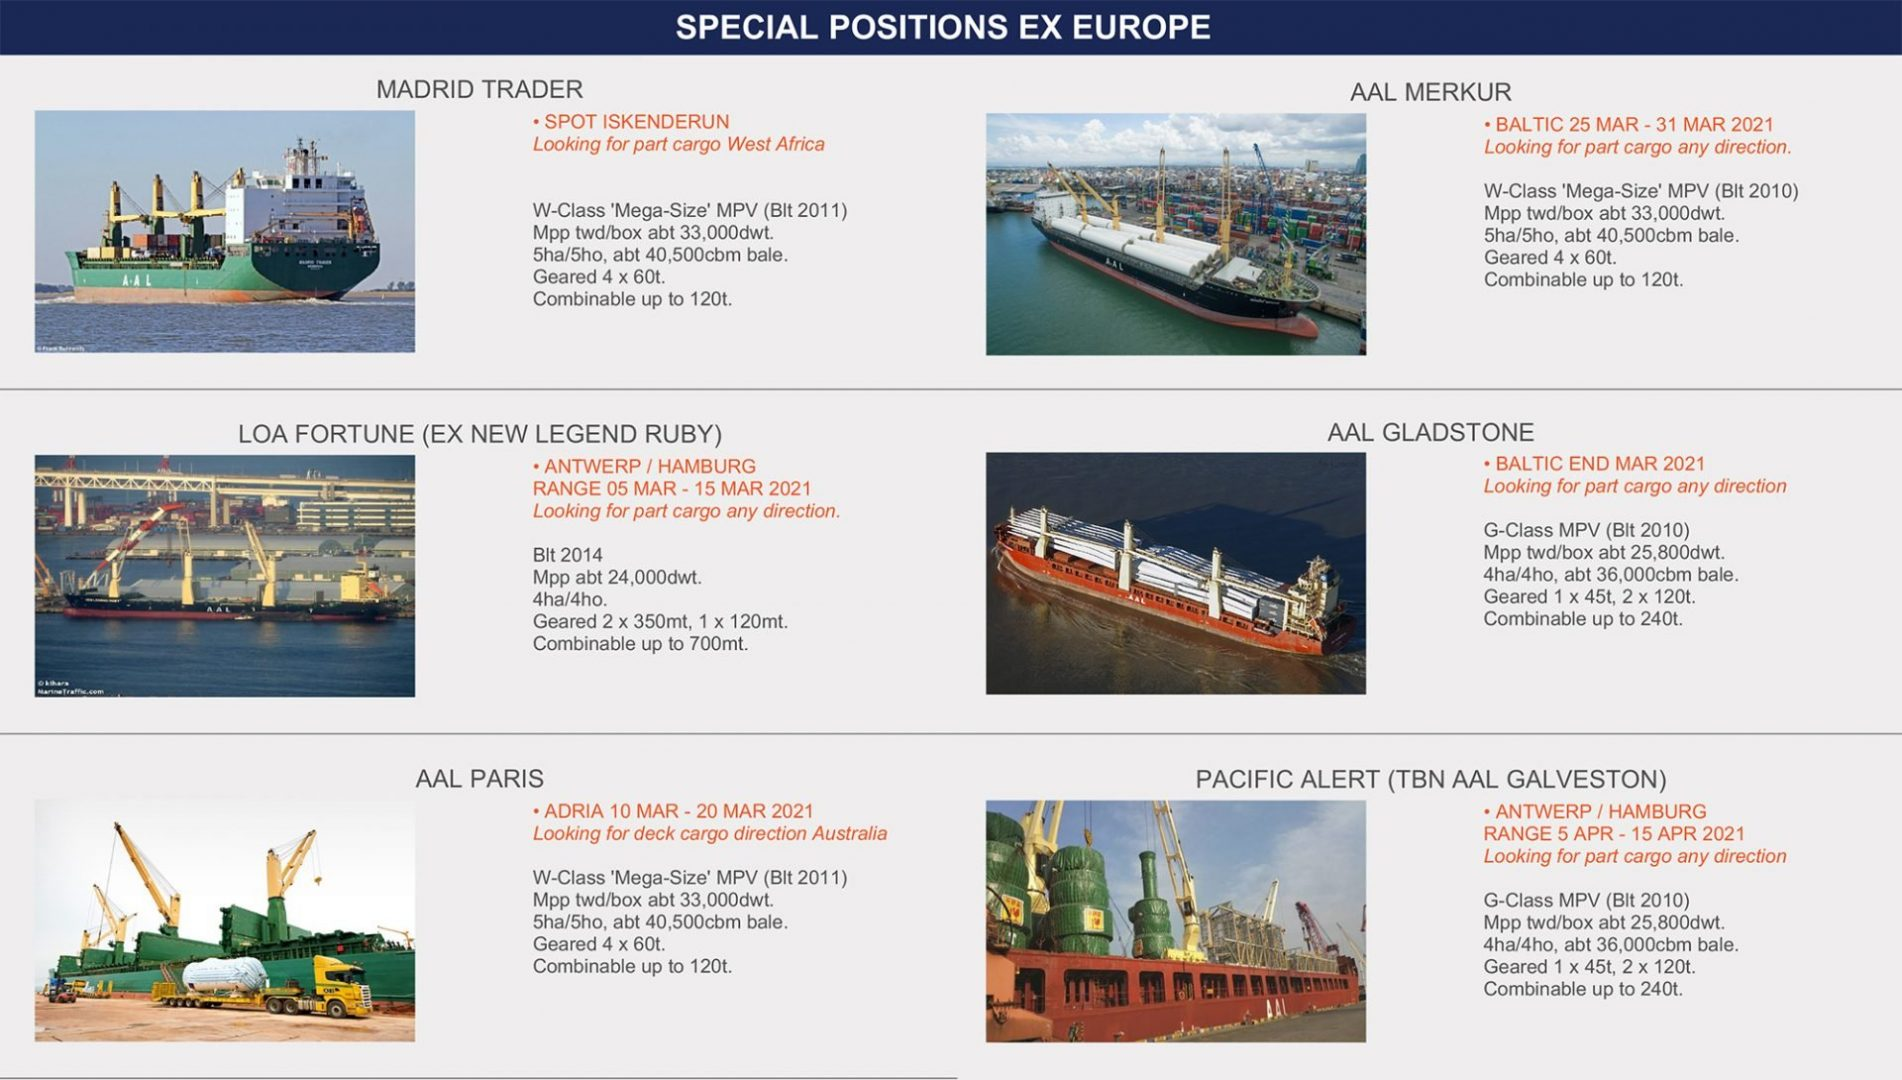 SPECIAL POSITIONS EX EUROPE (16.02.21)